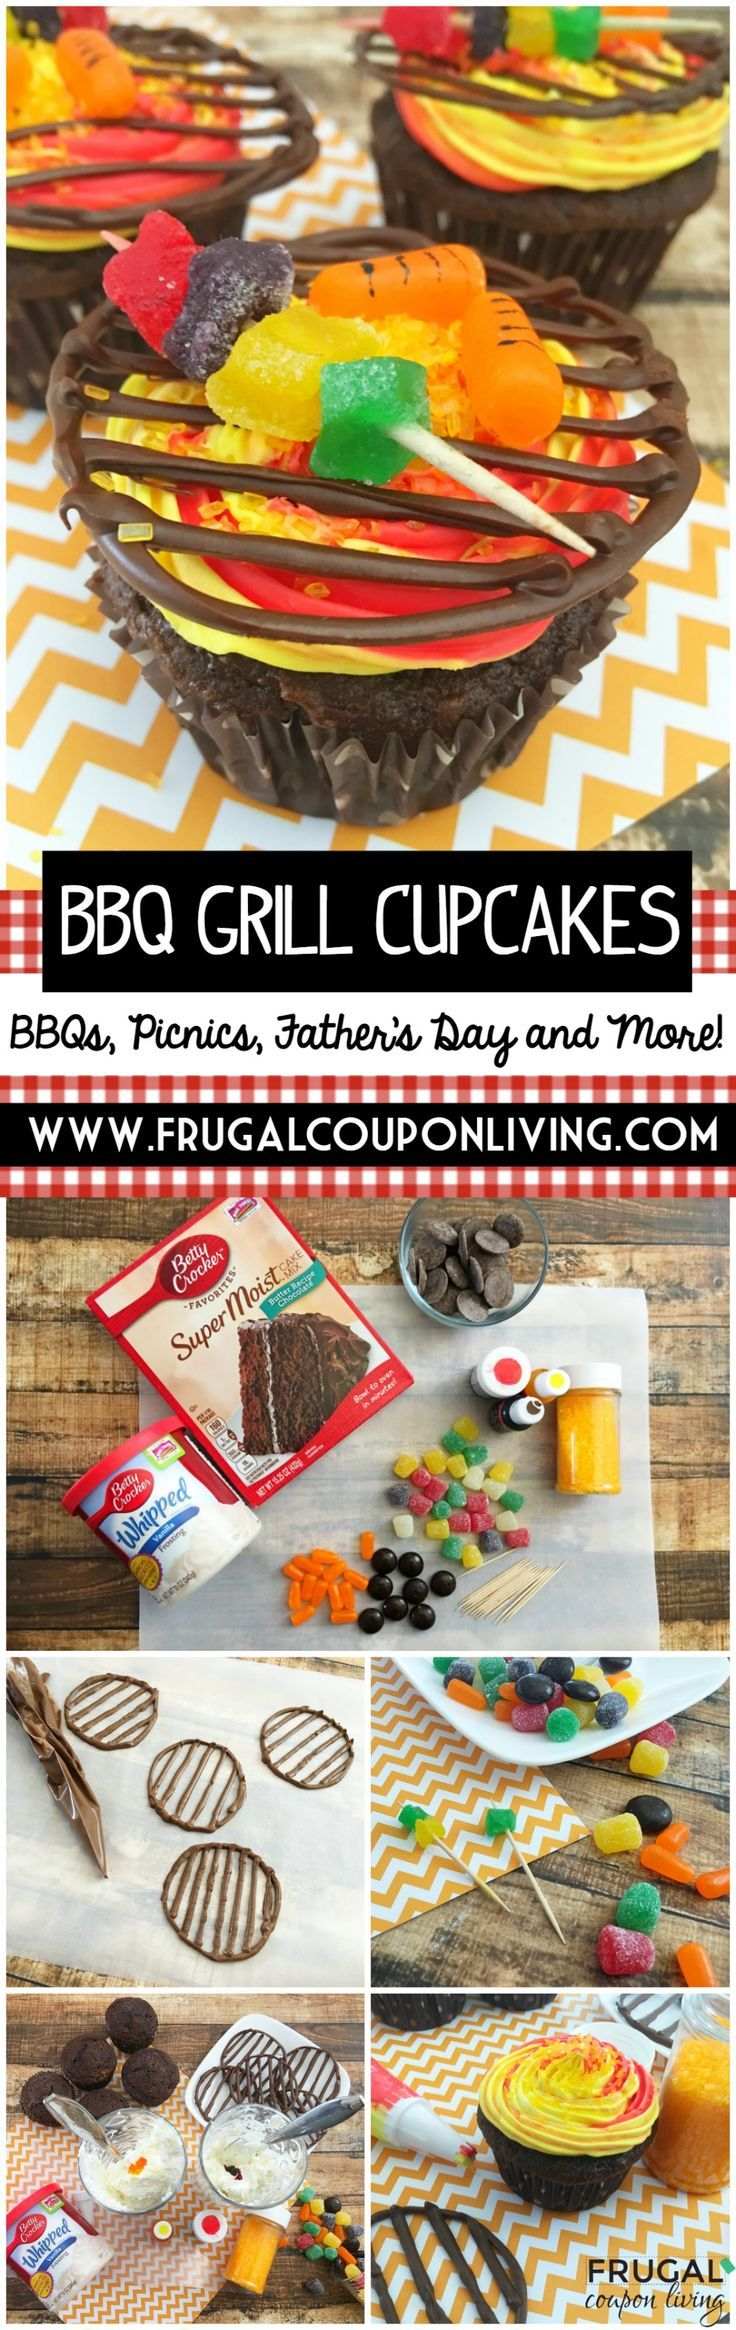 BBQ Grill Cupcakes - Looking for a fun dessert this Father's Day. We love these easy BBQ Grill Cupcakes made with everyone's favorite Betty Crocker Cake Mix and Icing!  Recipe on Frugal Coupon Living.  #bbqrecipes #picnic #picnicdesserts #desserts #cupcakes #fathersday #dessert #cupcakerecipes #summer #bbq #fathersdayideas #fathersdayrecipes #frugalcouponliving